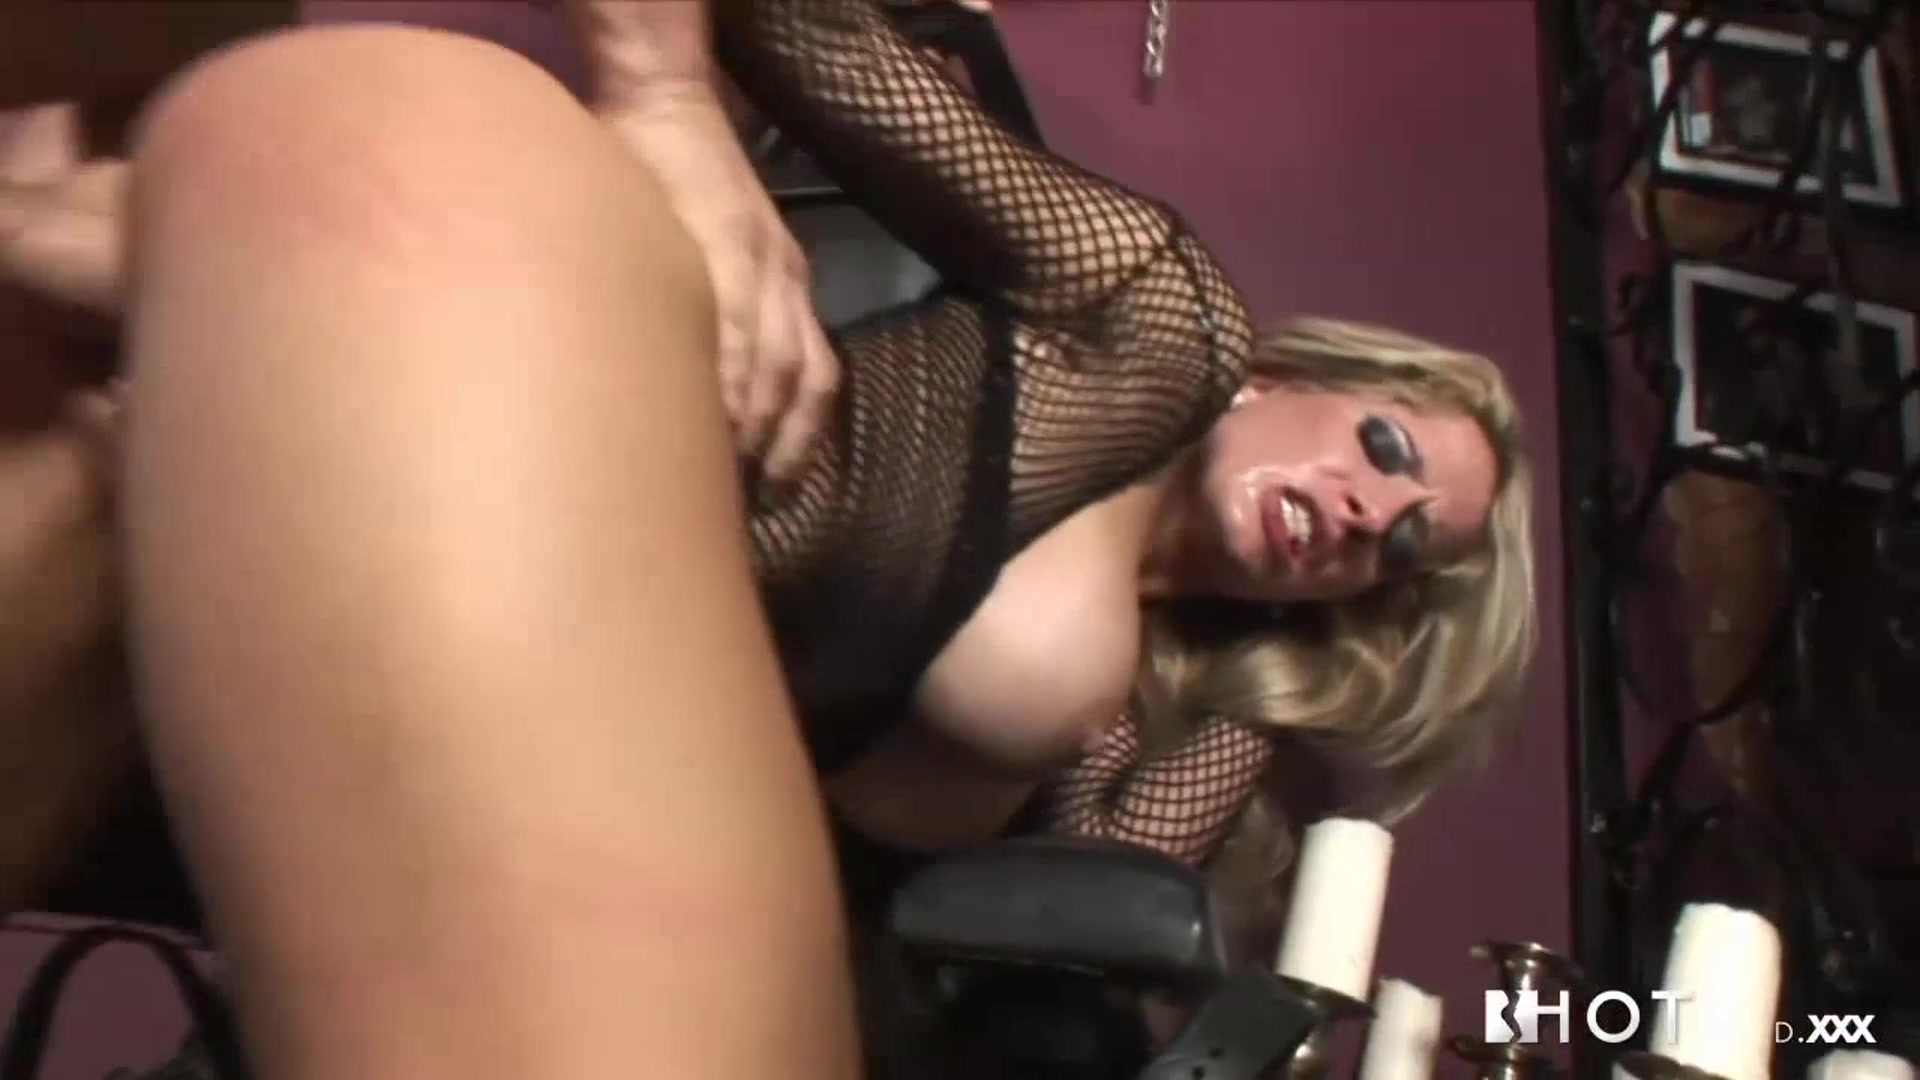 Sex archive Chubby mature wife rides black monster cock